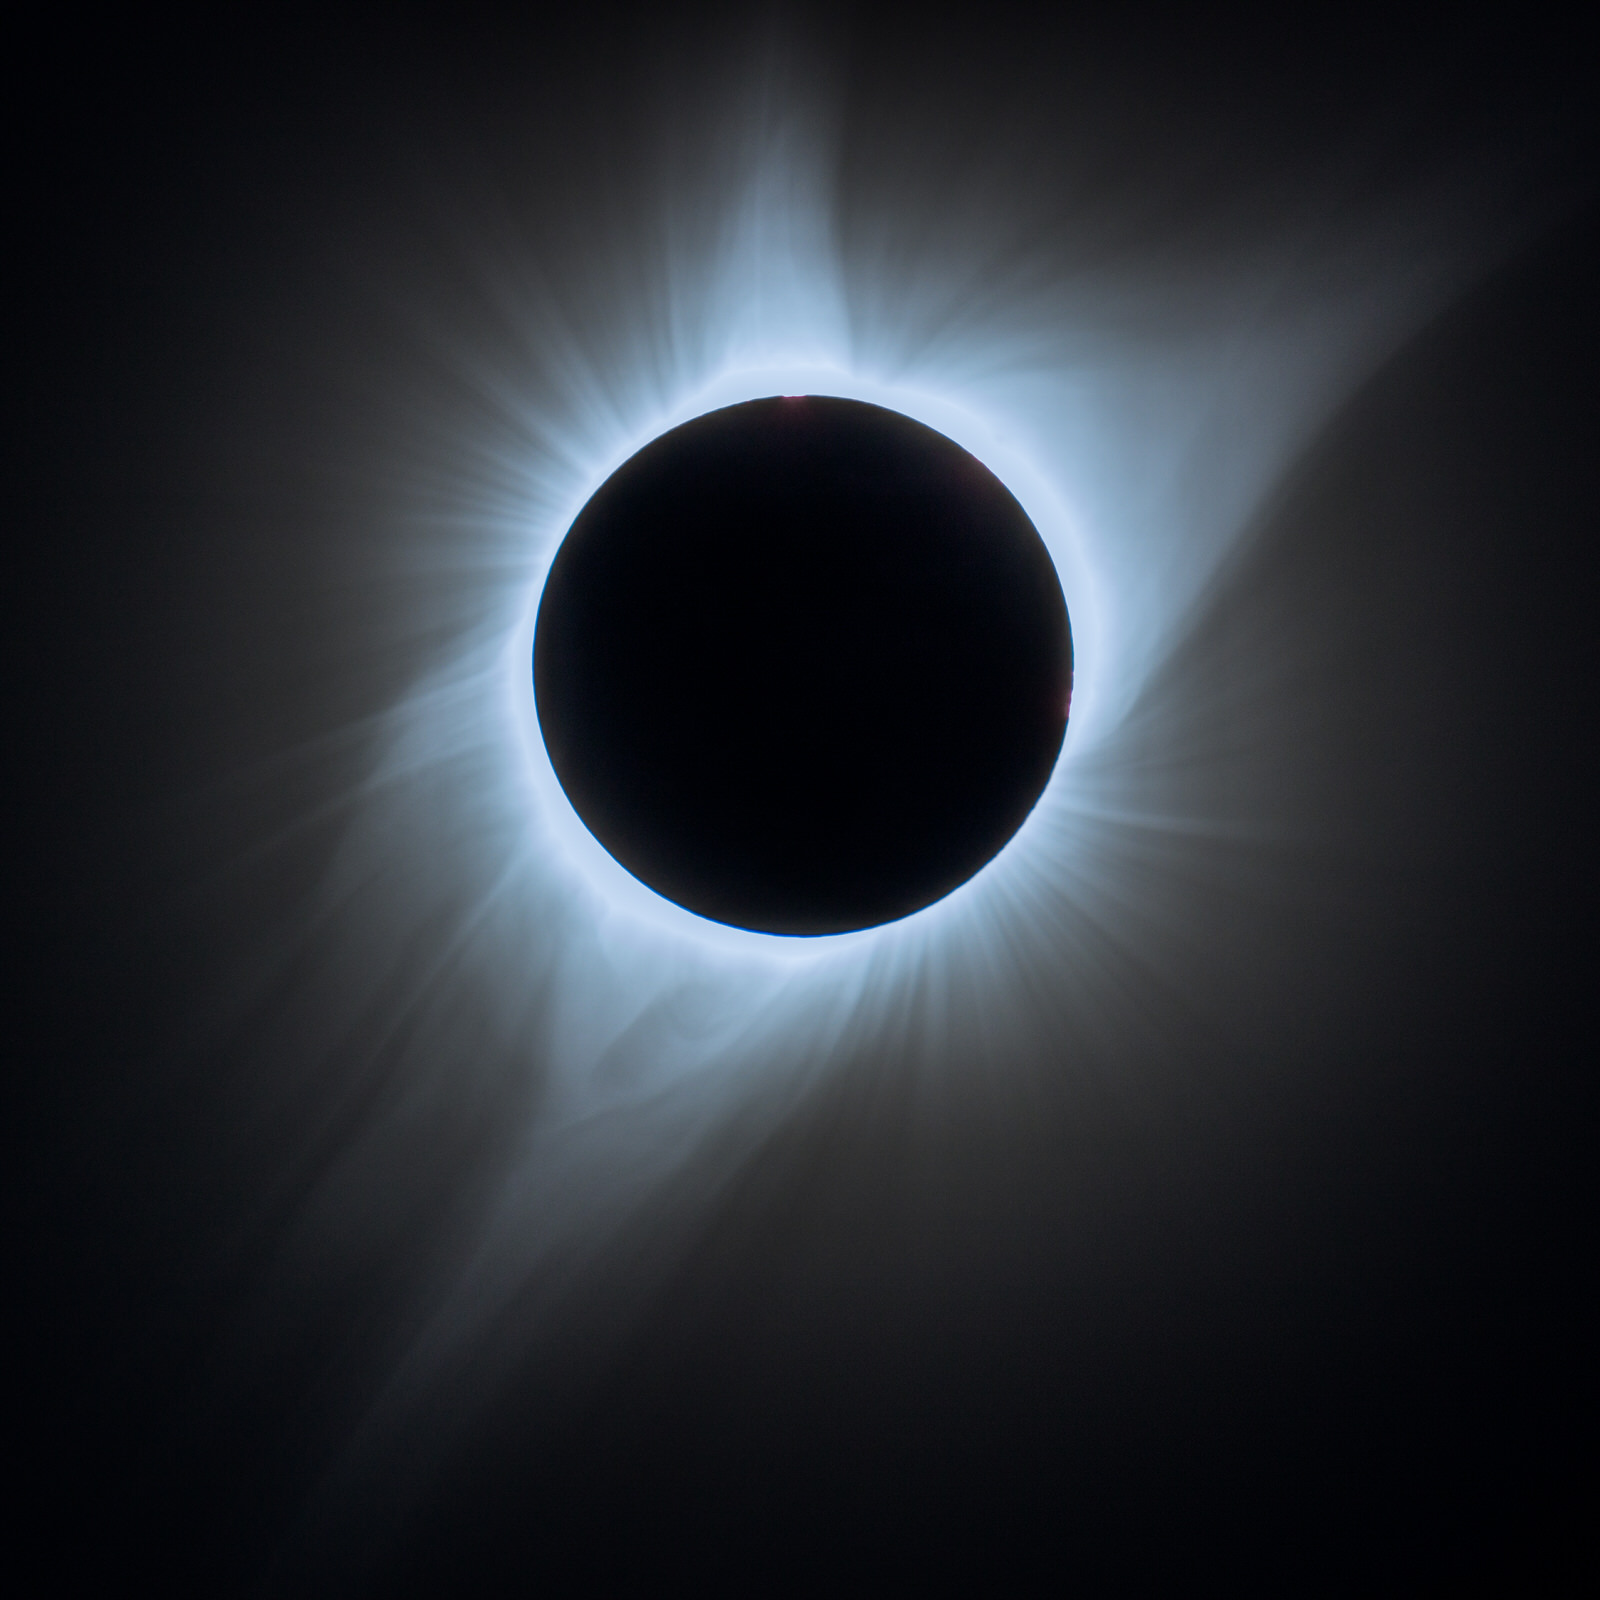 Corona around the Great Solar Eclipse of 2017